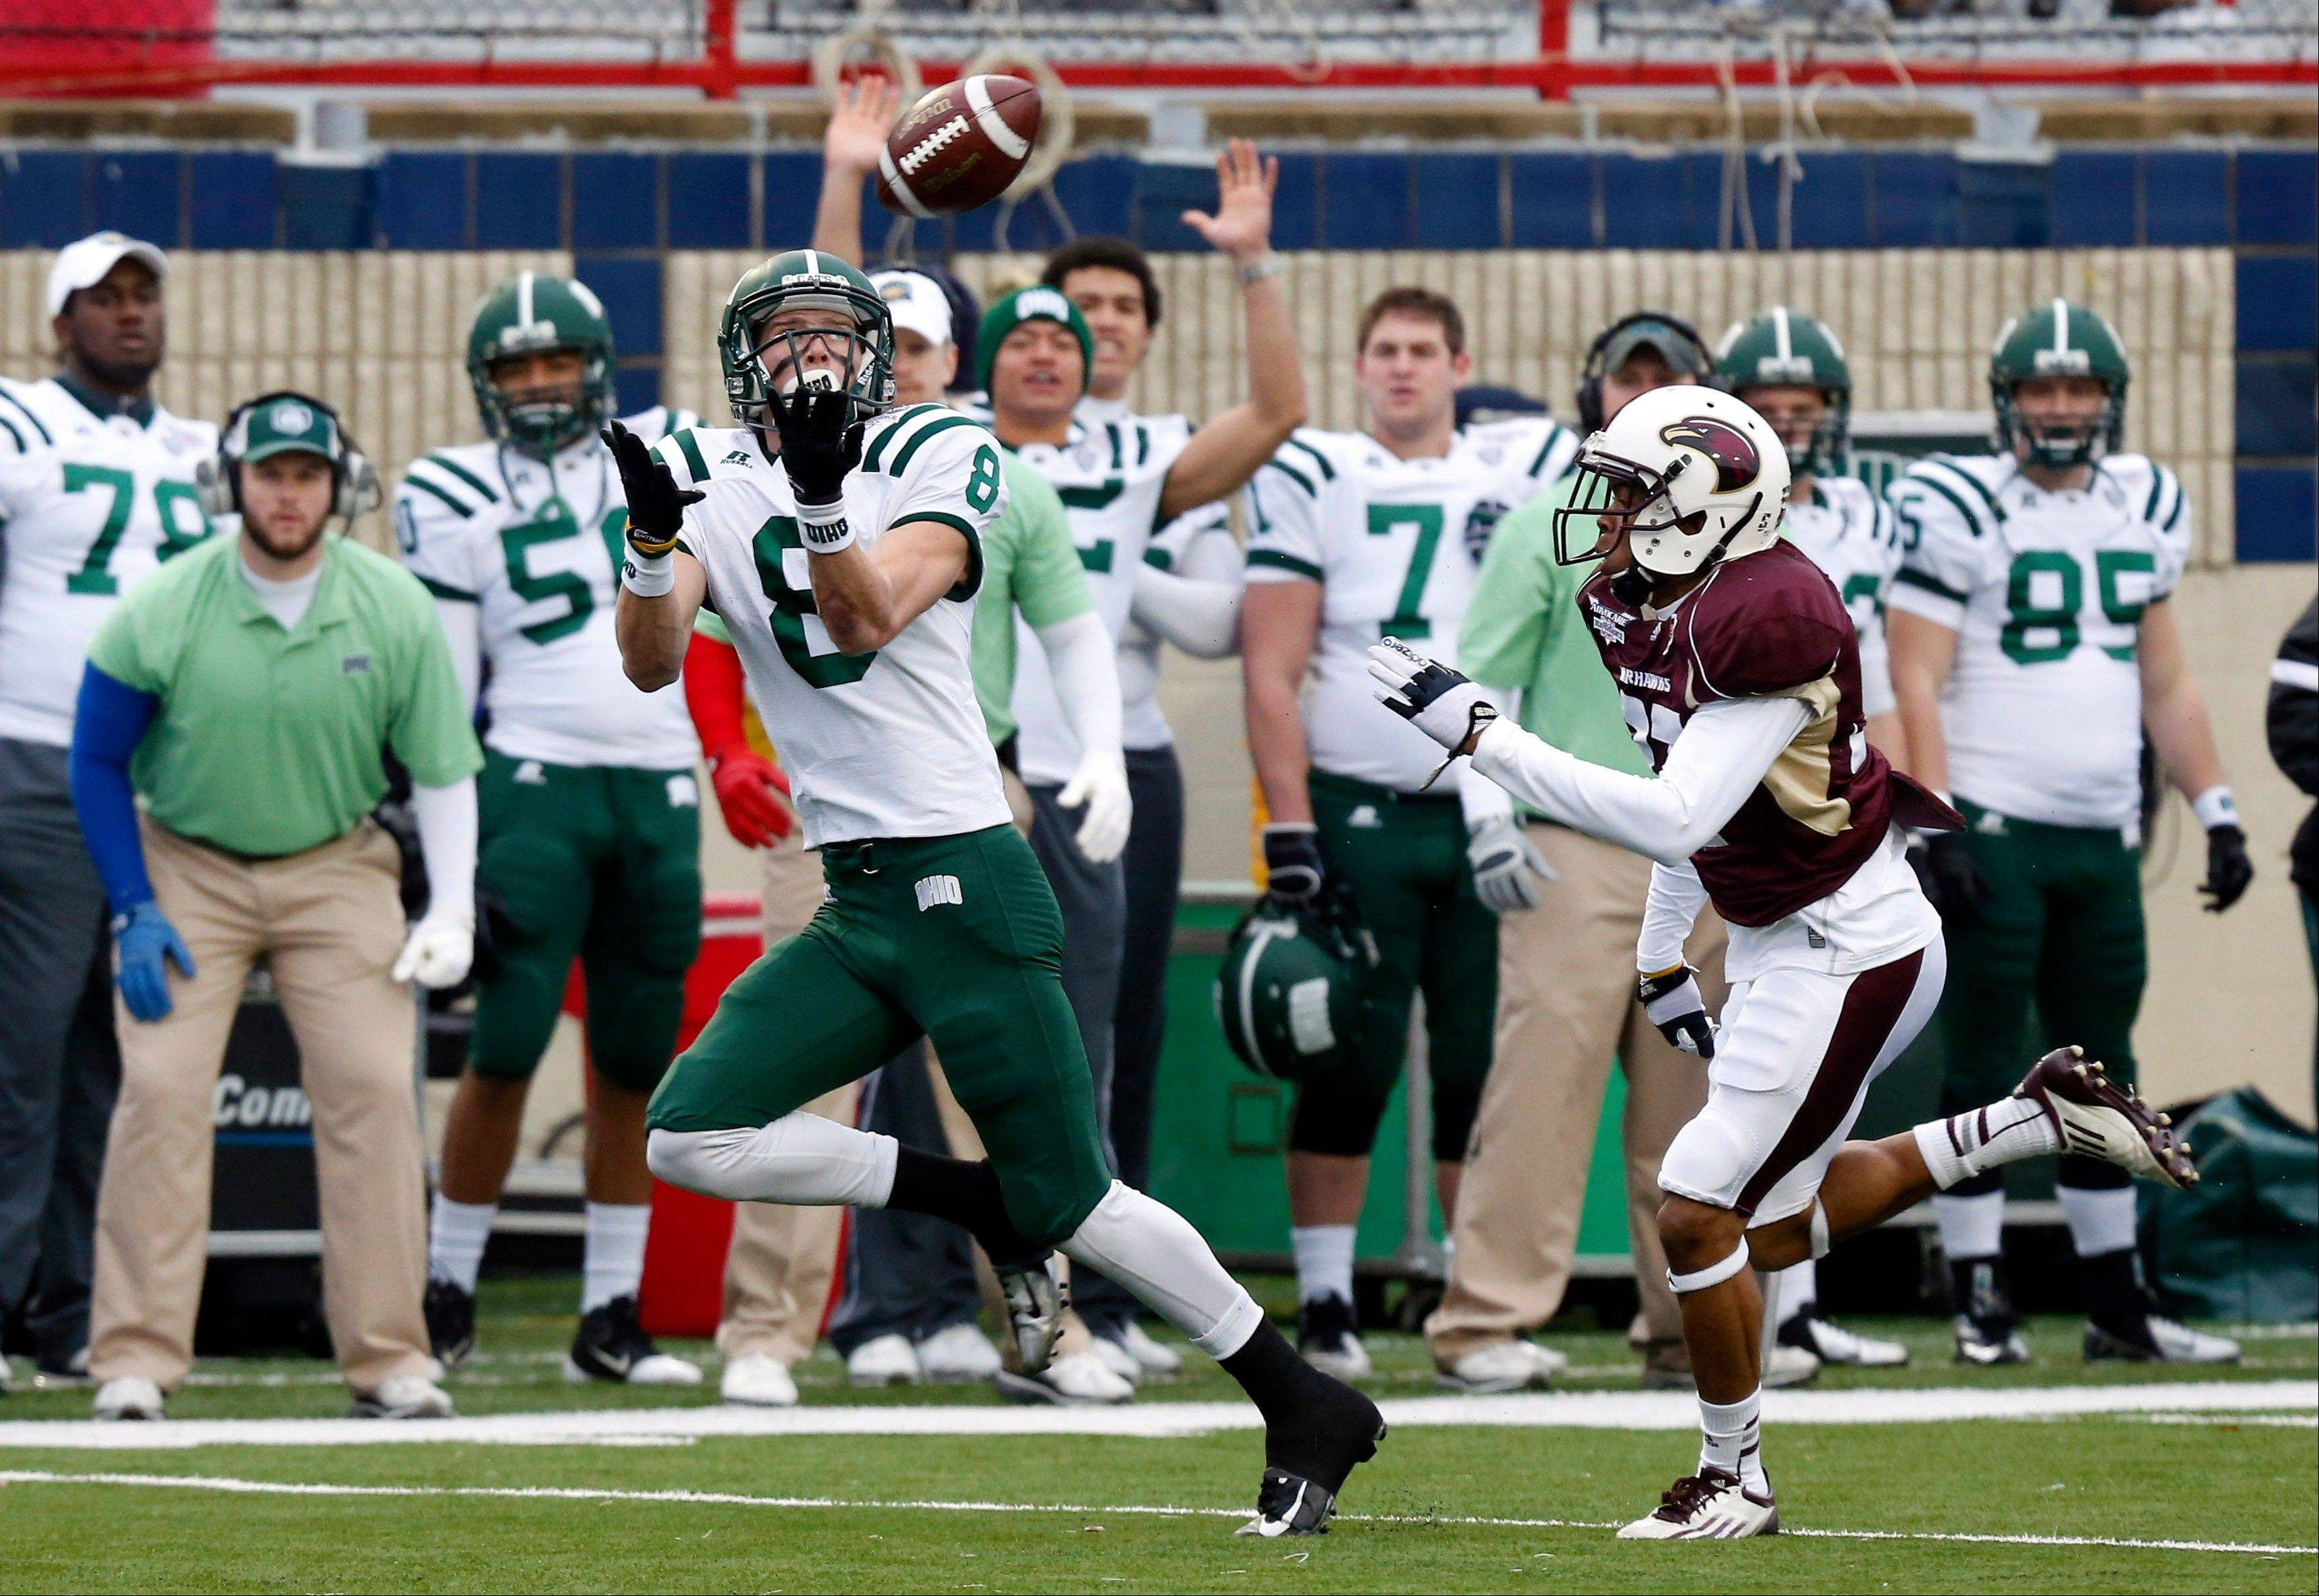 Ohio wide receiver Chase Cochran (8) catches a 68-yard touchdown pass in front of Louisiana-Monroe safety Mitch Lane (38) Friday during the first quarter of the Independence Bowl in Shreveport, La.